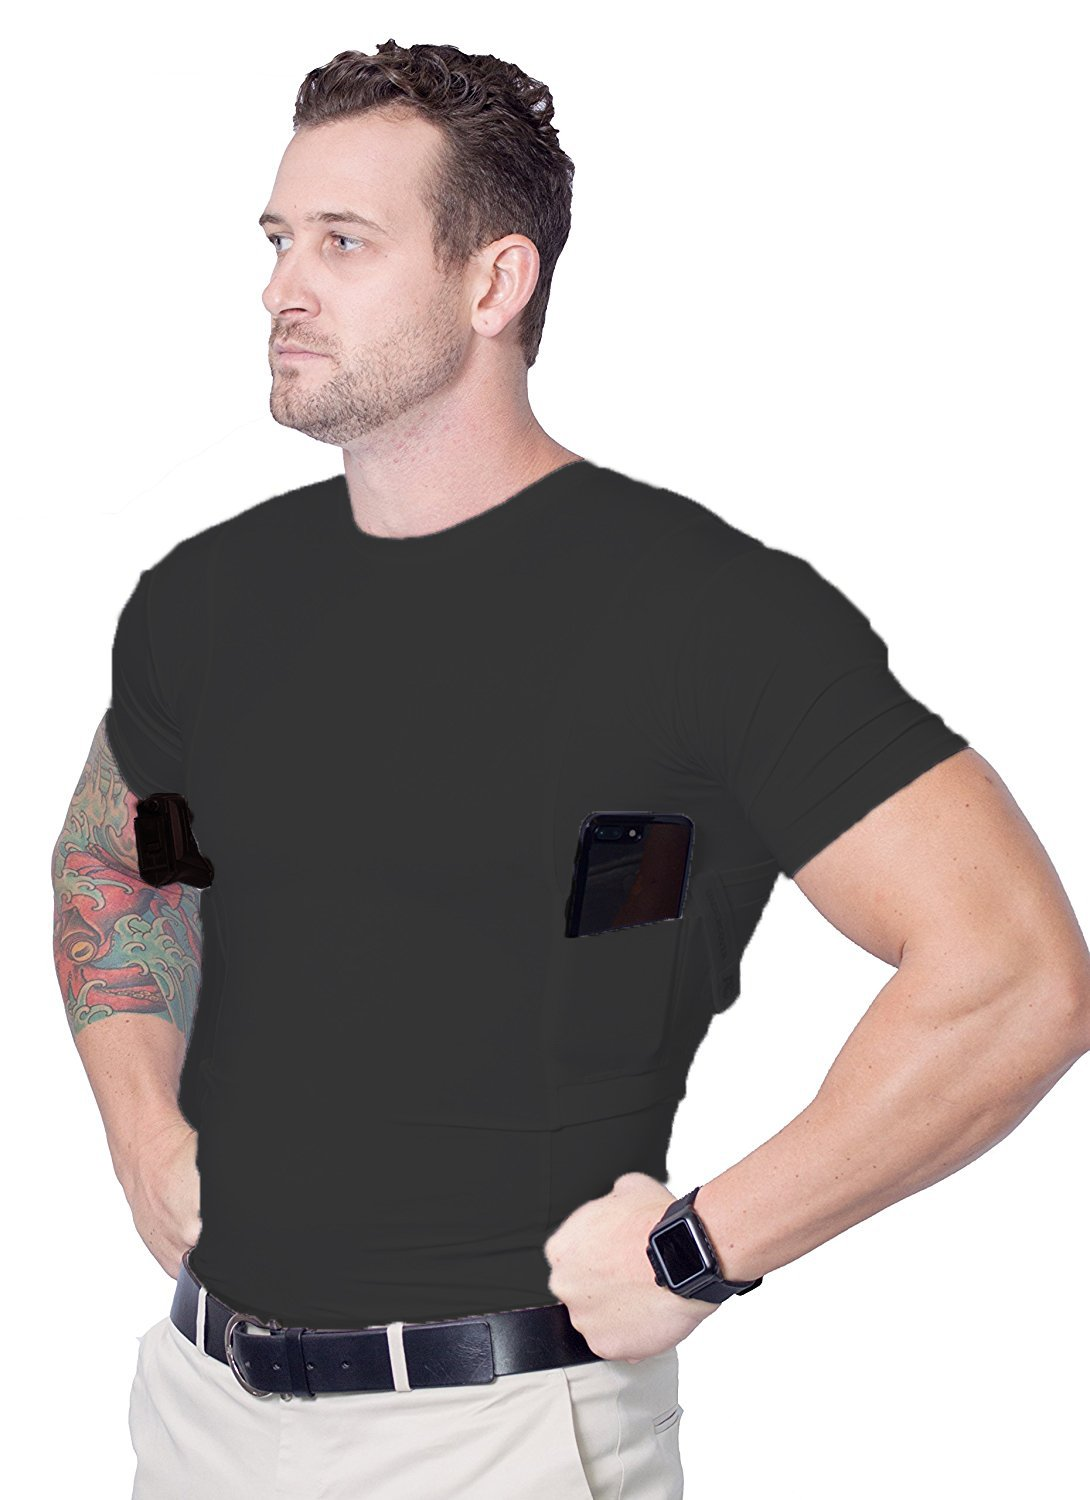 AC Undercover Concealed Carry Crew Neck Tshirt/CCW Tactical Clothing/Concealed Clothing REF. 511 (Black) (Black 3-Pack, Medium) by AC Undercover (Image #2)